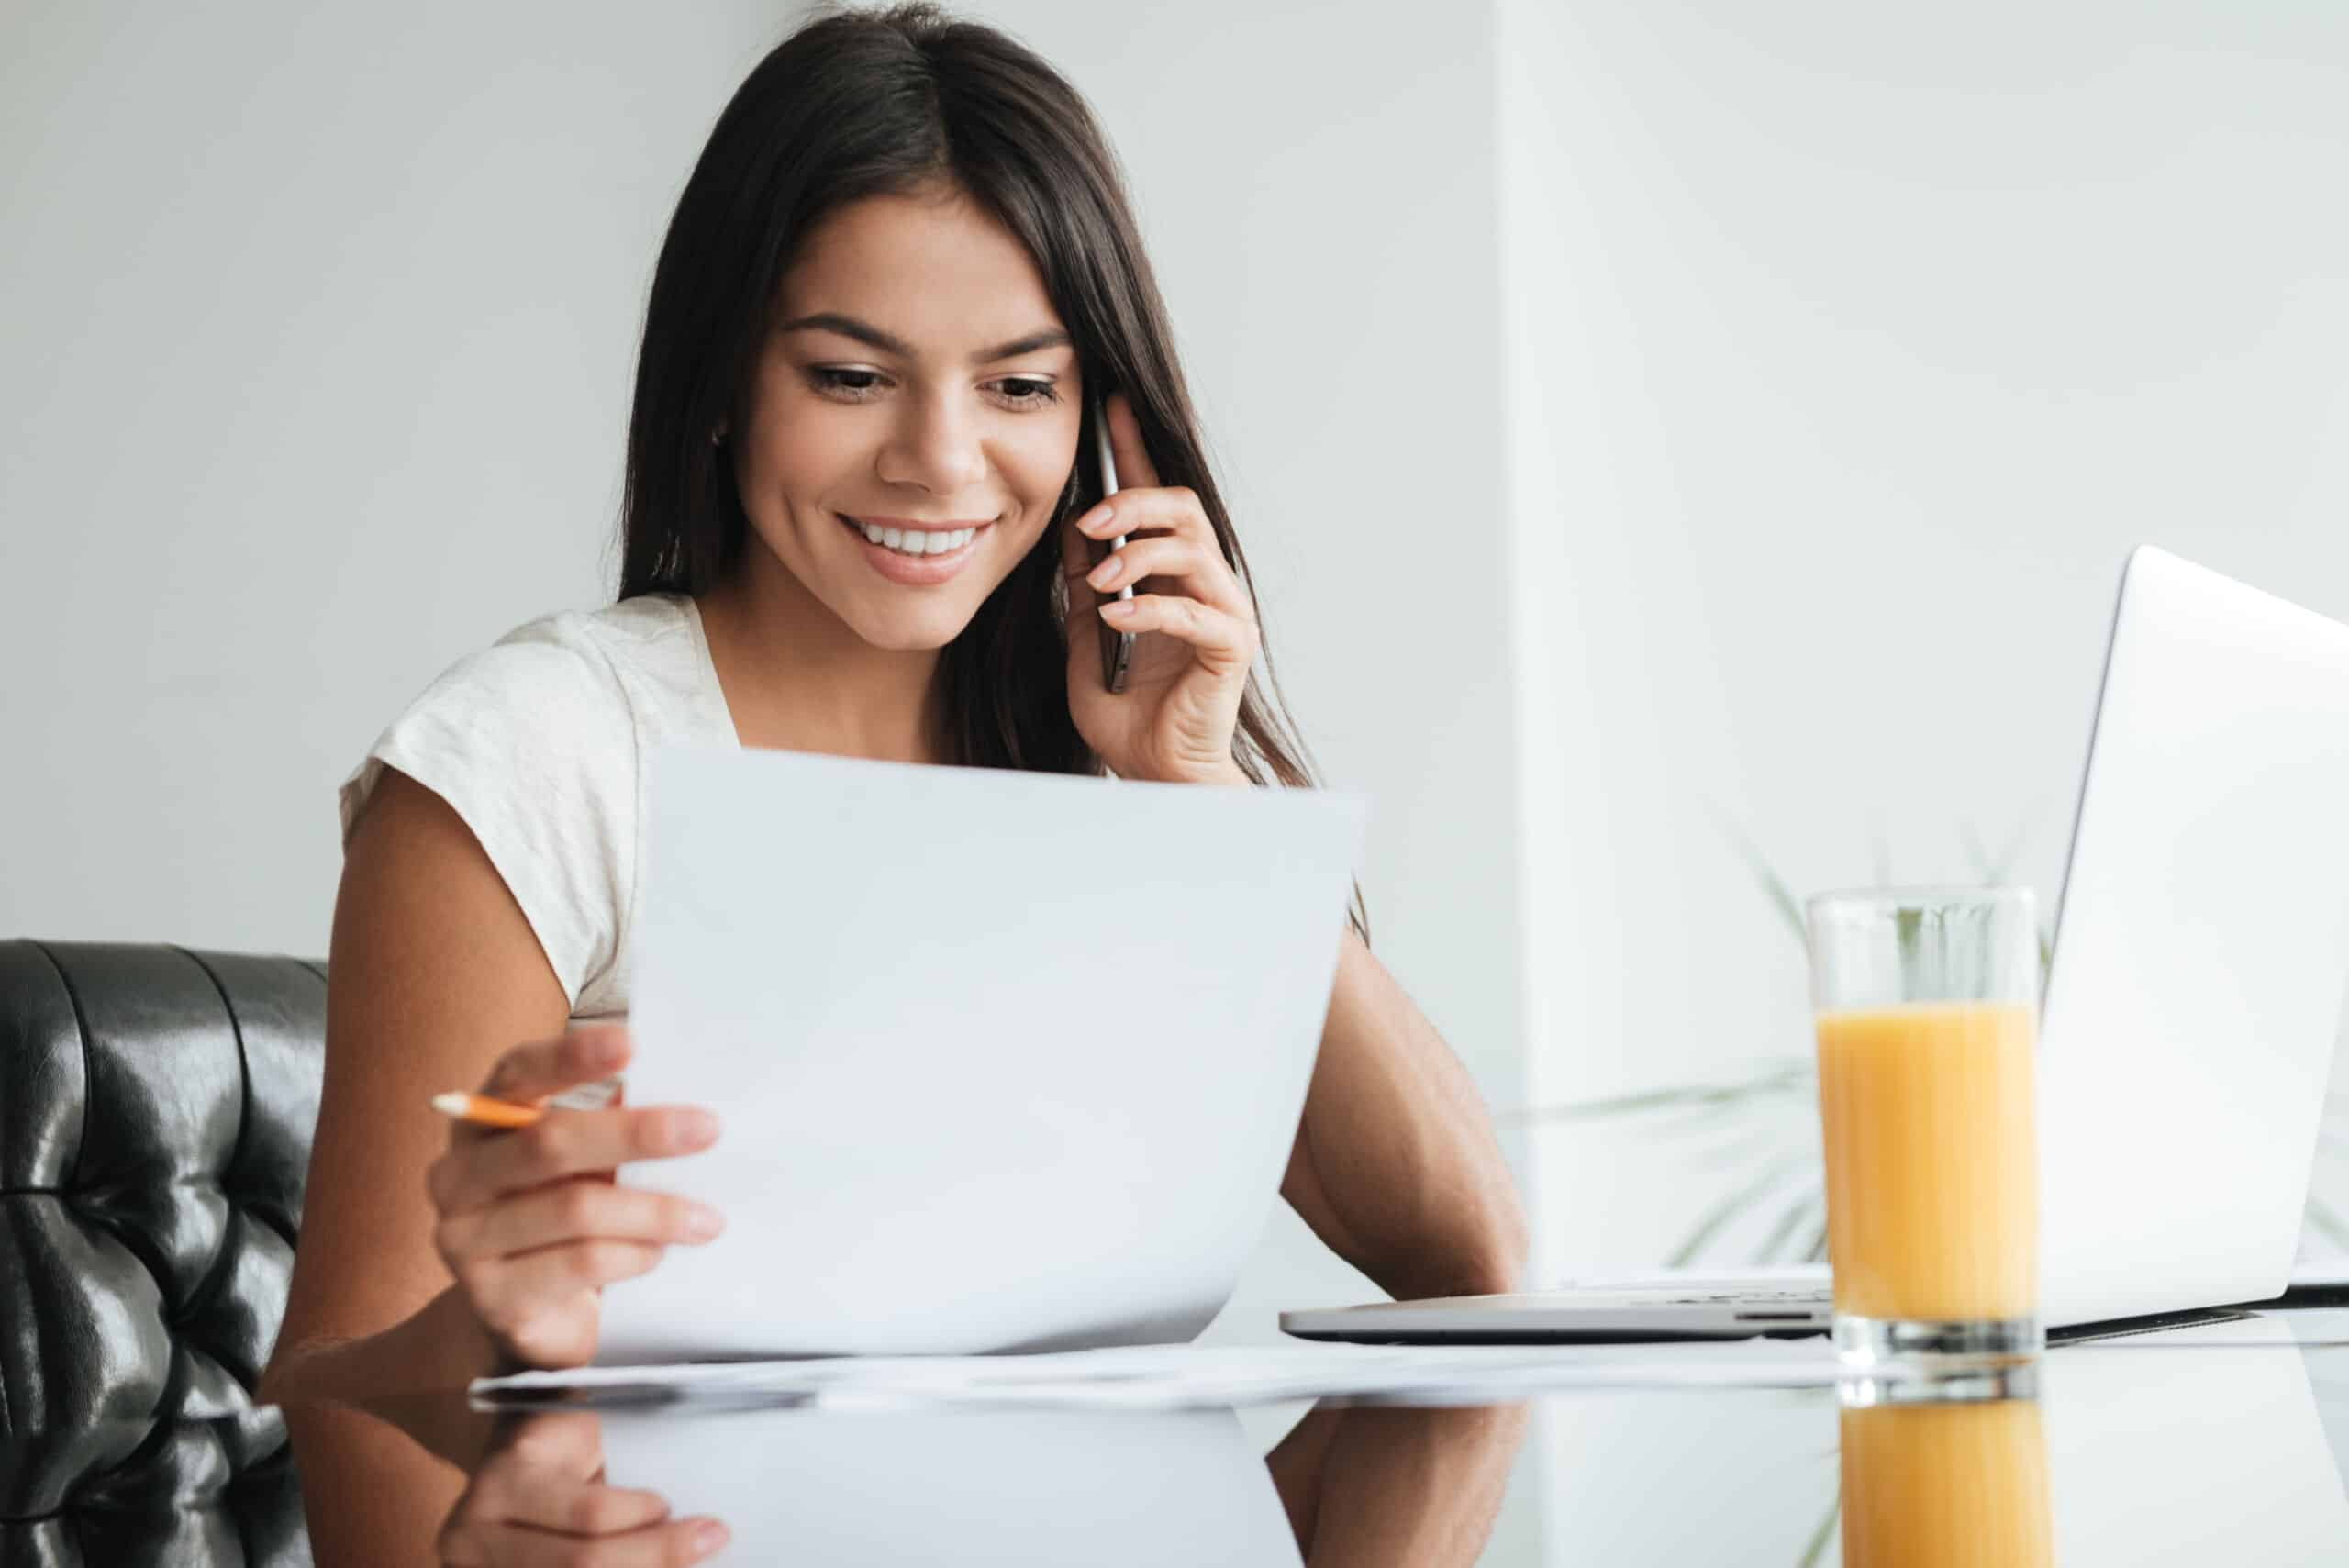 Work at Home Financial Customer Support Jobs with Omni Interactions